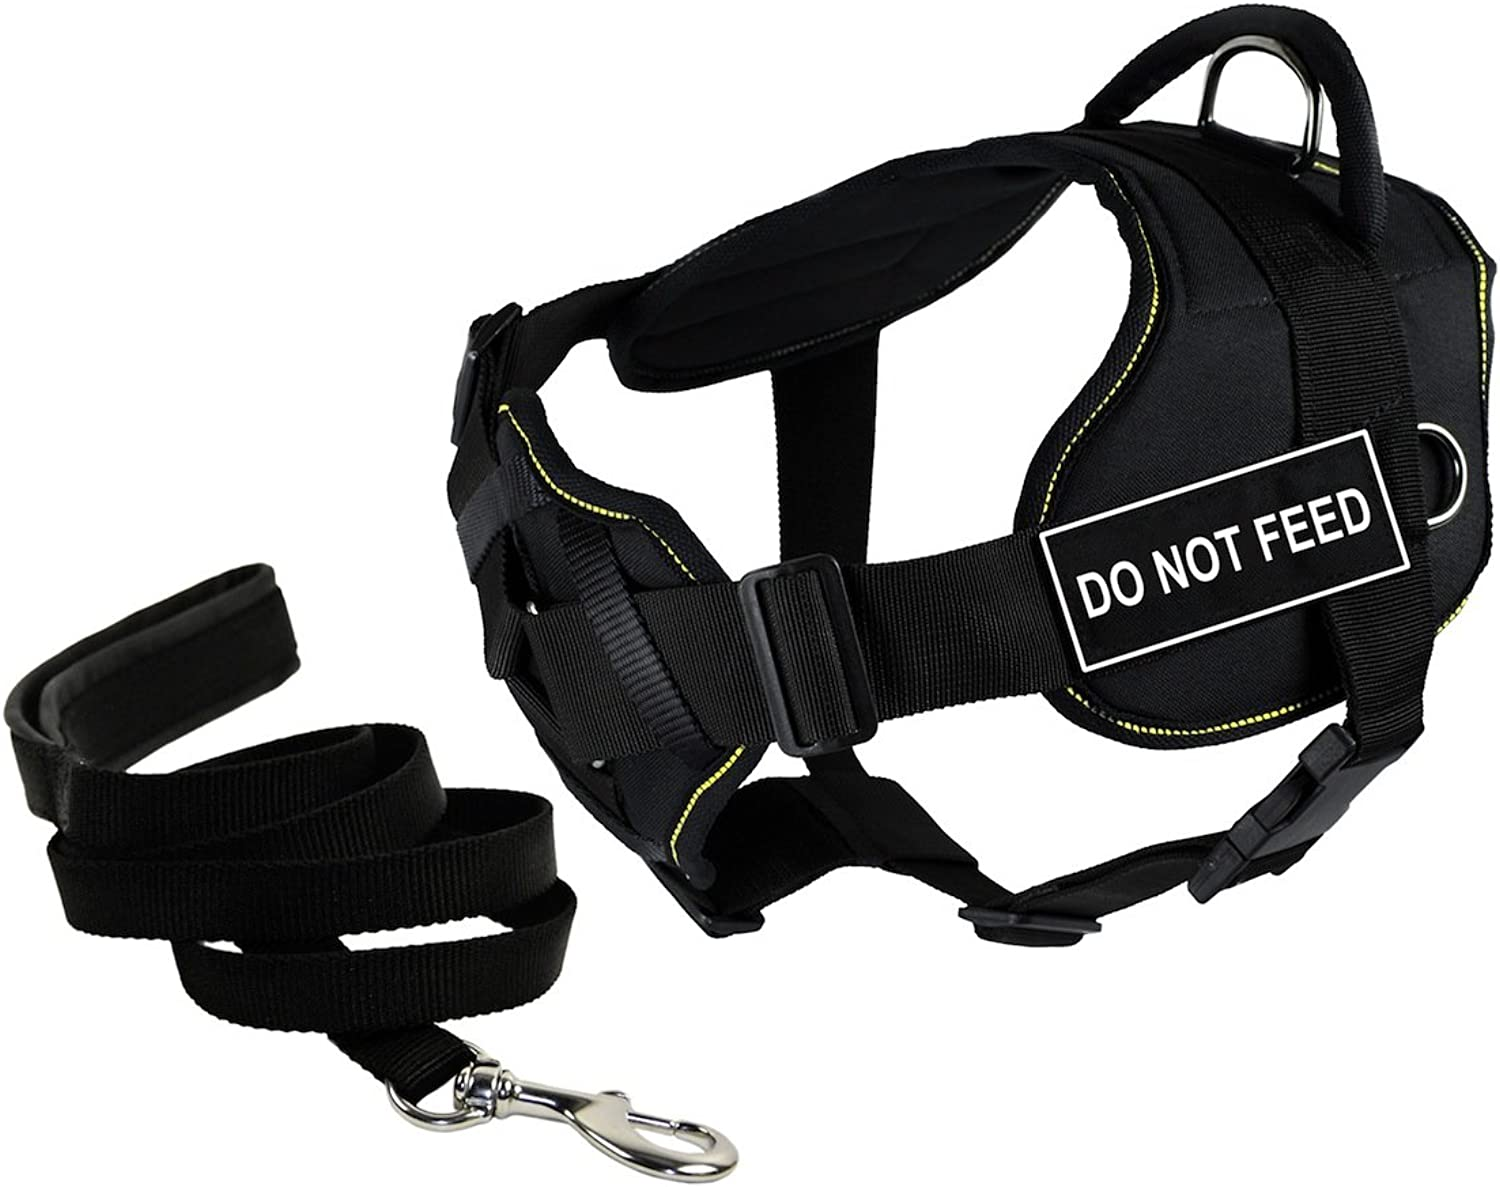 Dean & Tyler's DT Fun Chest Support DO NOT FEED Harness, Small, with 6 ft Padded Puppy Leash.